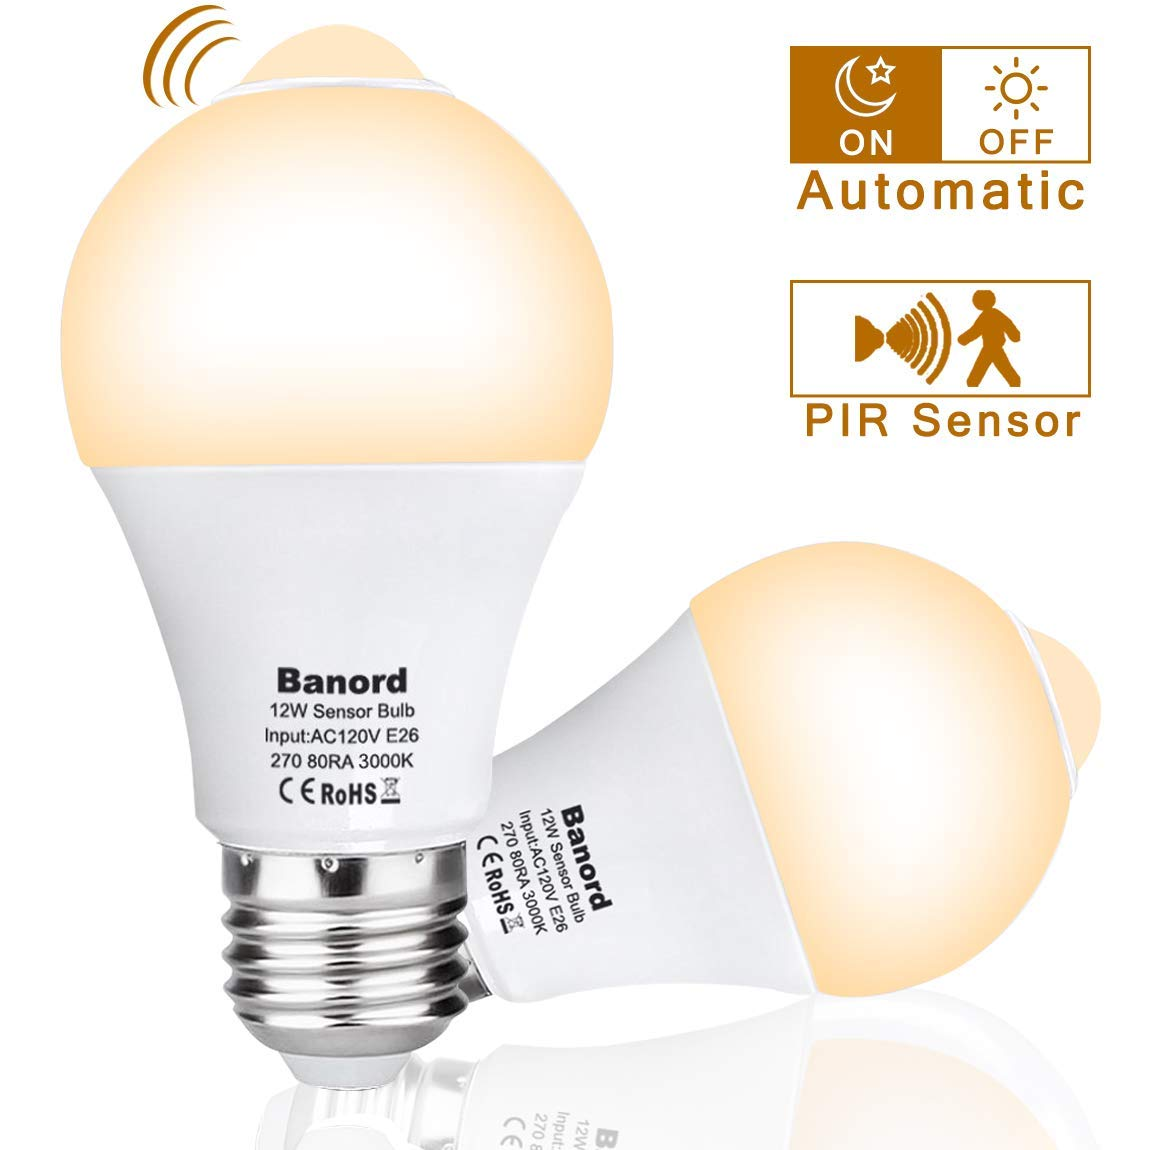 Motion Sensor Light Bulb, 12W PIR Motion Detector Smart Bulbs, Dusk to Dawn Motion LED Light, E26 Base 500lm 3000K Warm White, A19 Light Bulbs, Auto On/Off Outdoor/Indoor LED Bulb, 2-Pack by BANORD